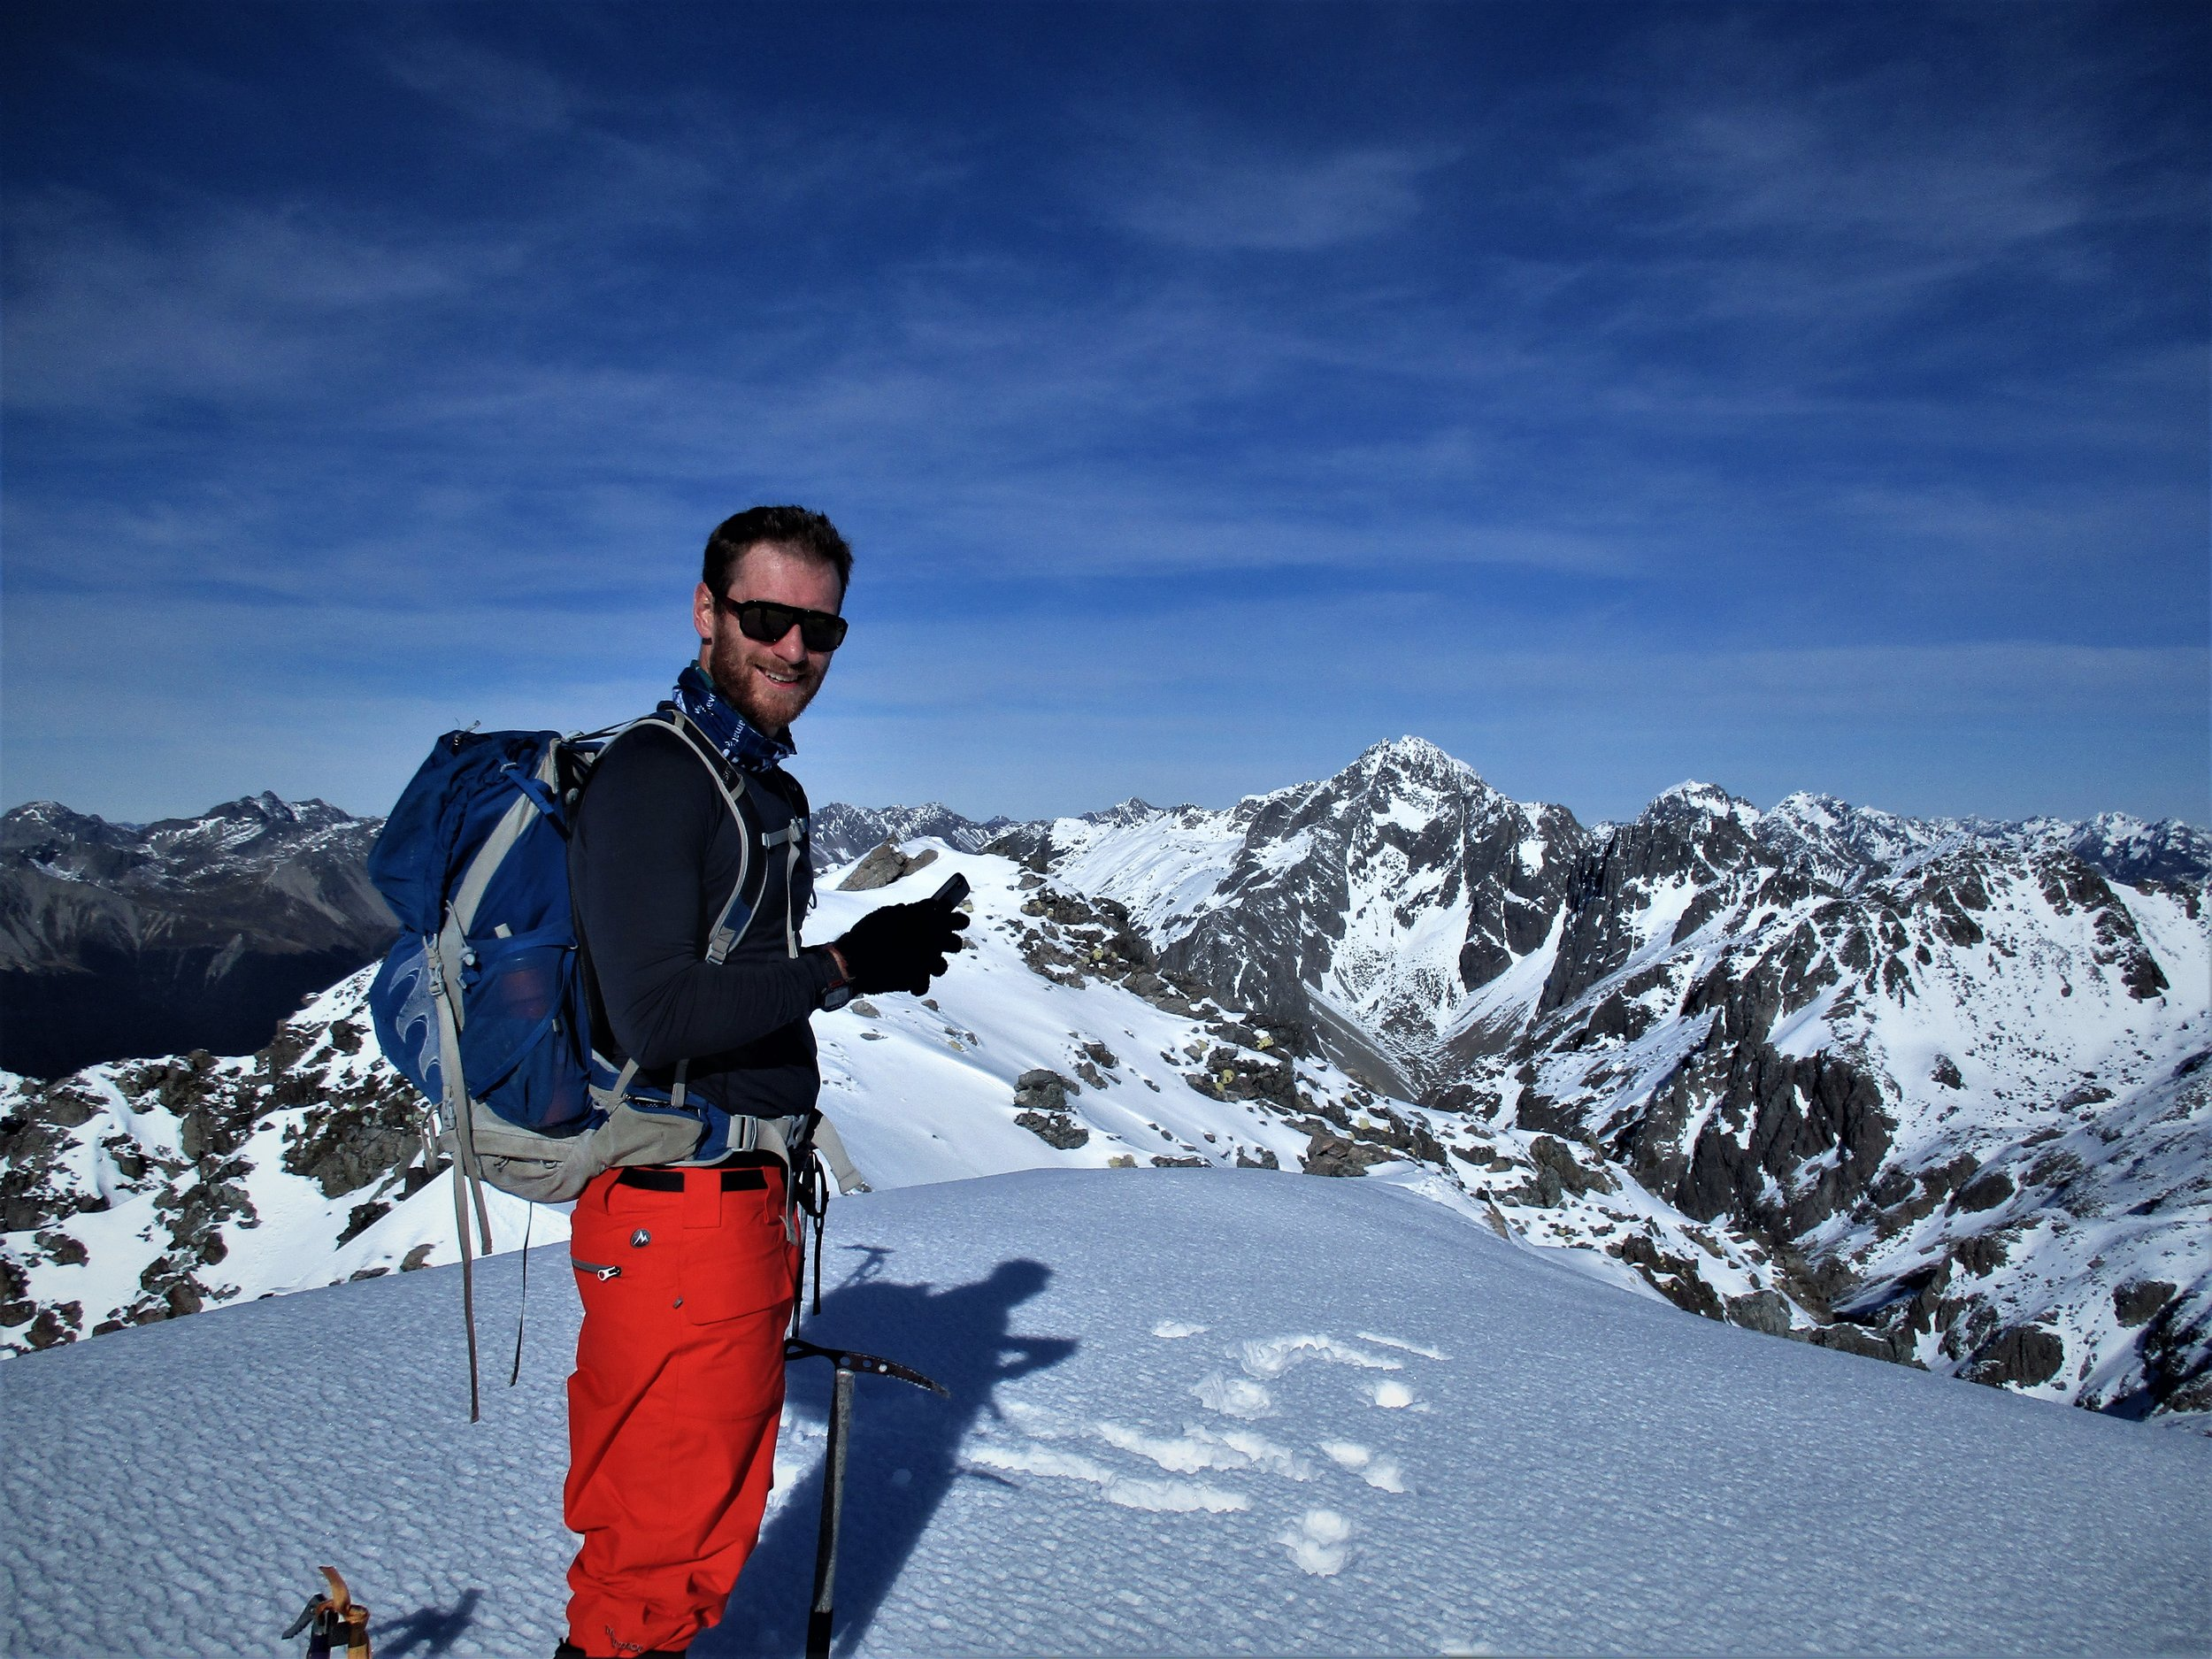 Dave on top of Alps, Mount Hopeless behind